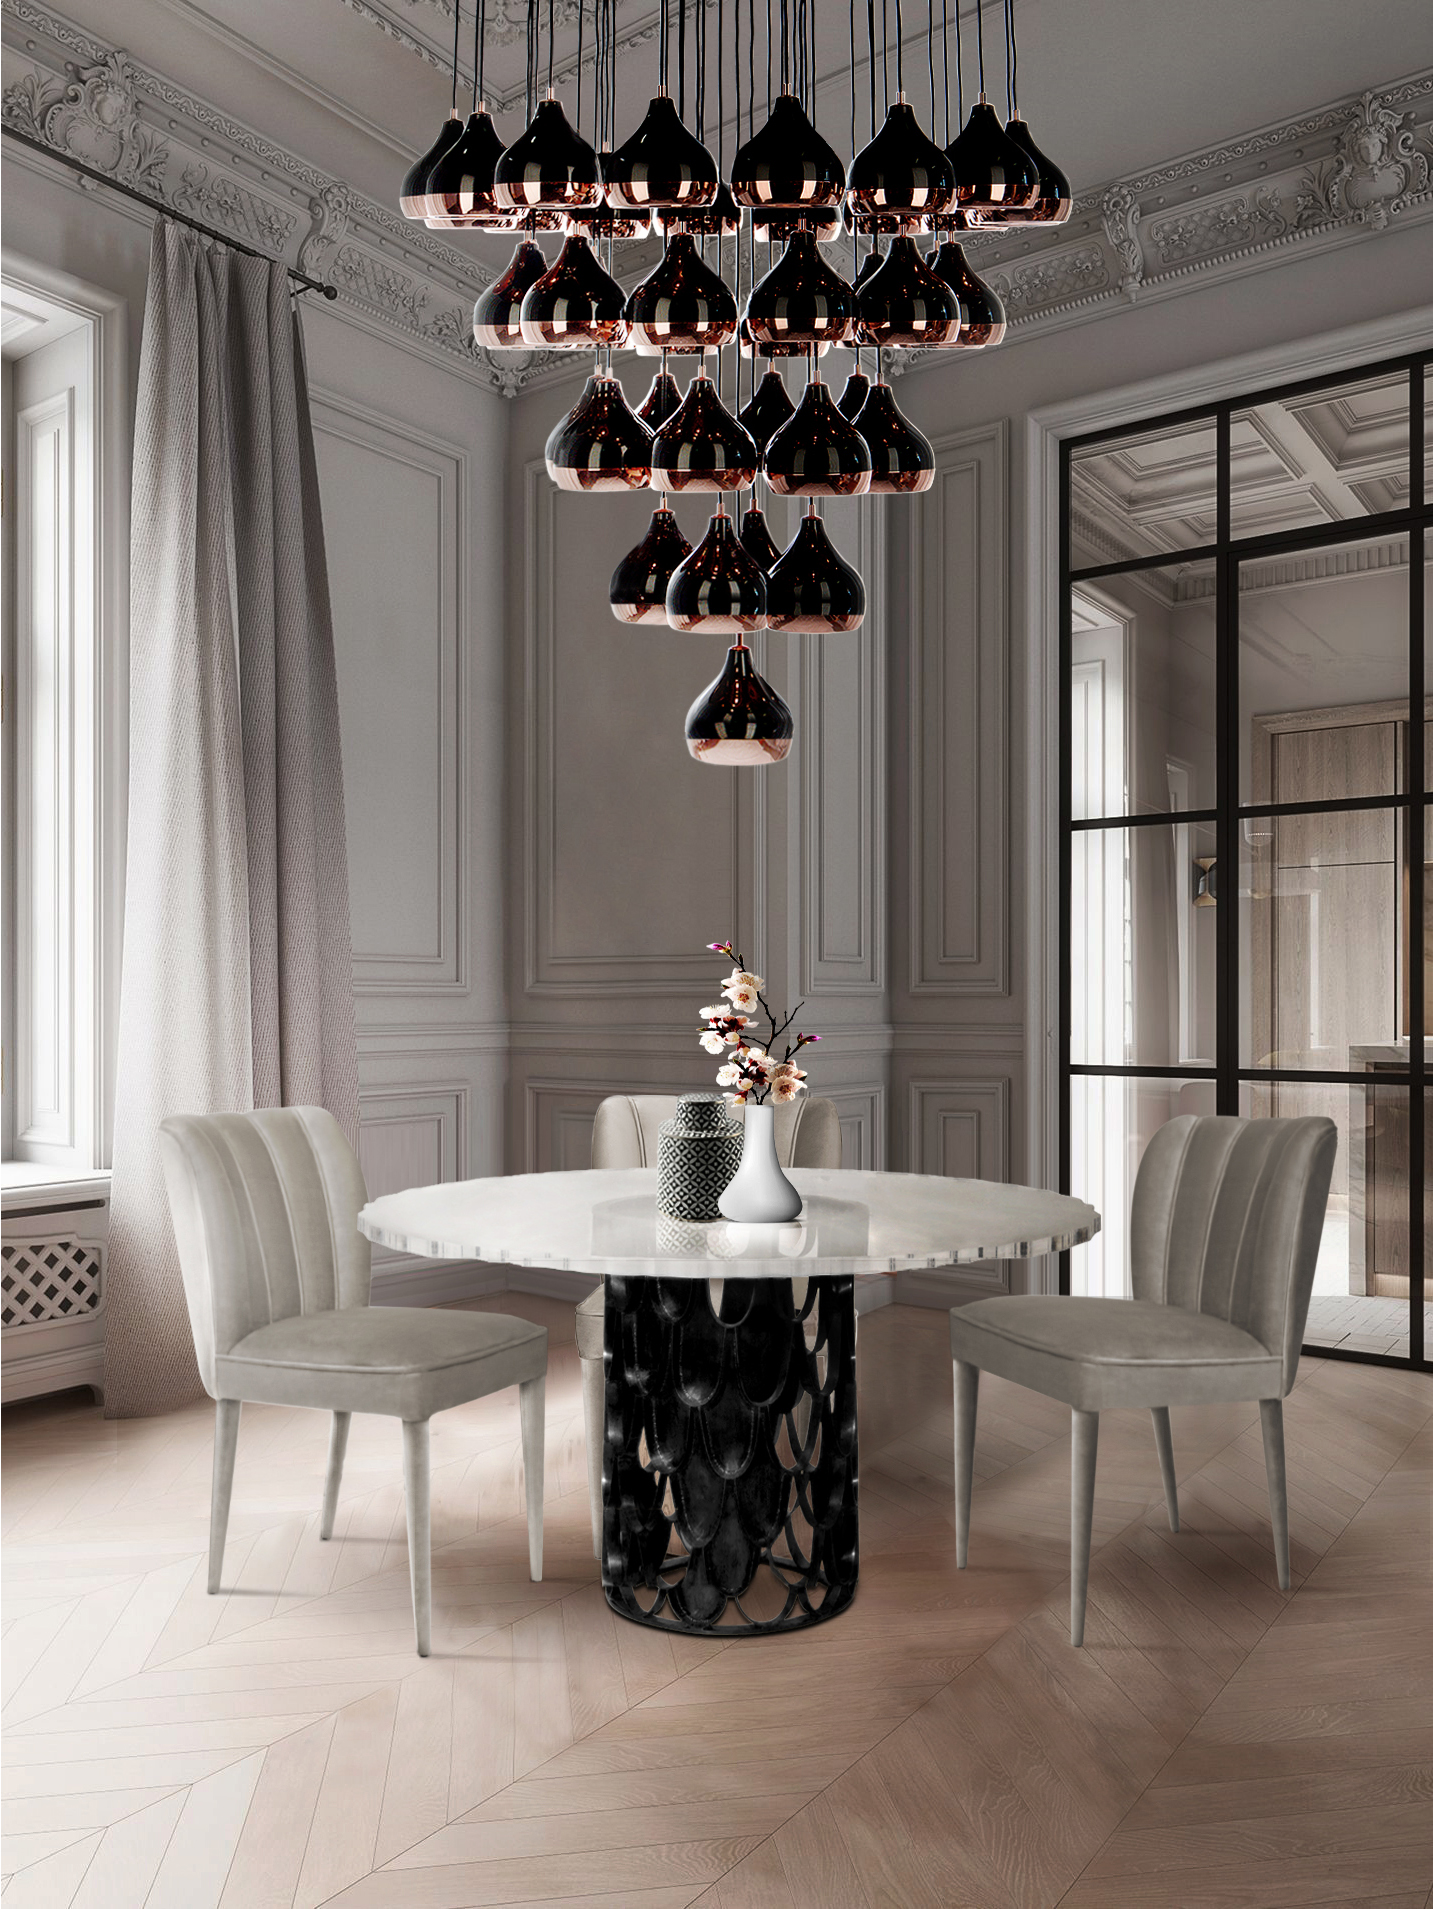 7 Dining Rooms That Make The Most Out of Limited Space Due to the Lighting Fixture! dining rooms 7 Dining Rooms That Make The Most Out of Limited Space Due to the Lighting Fixture! 3 4